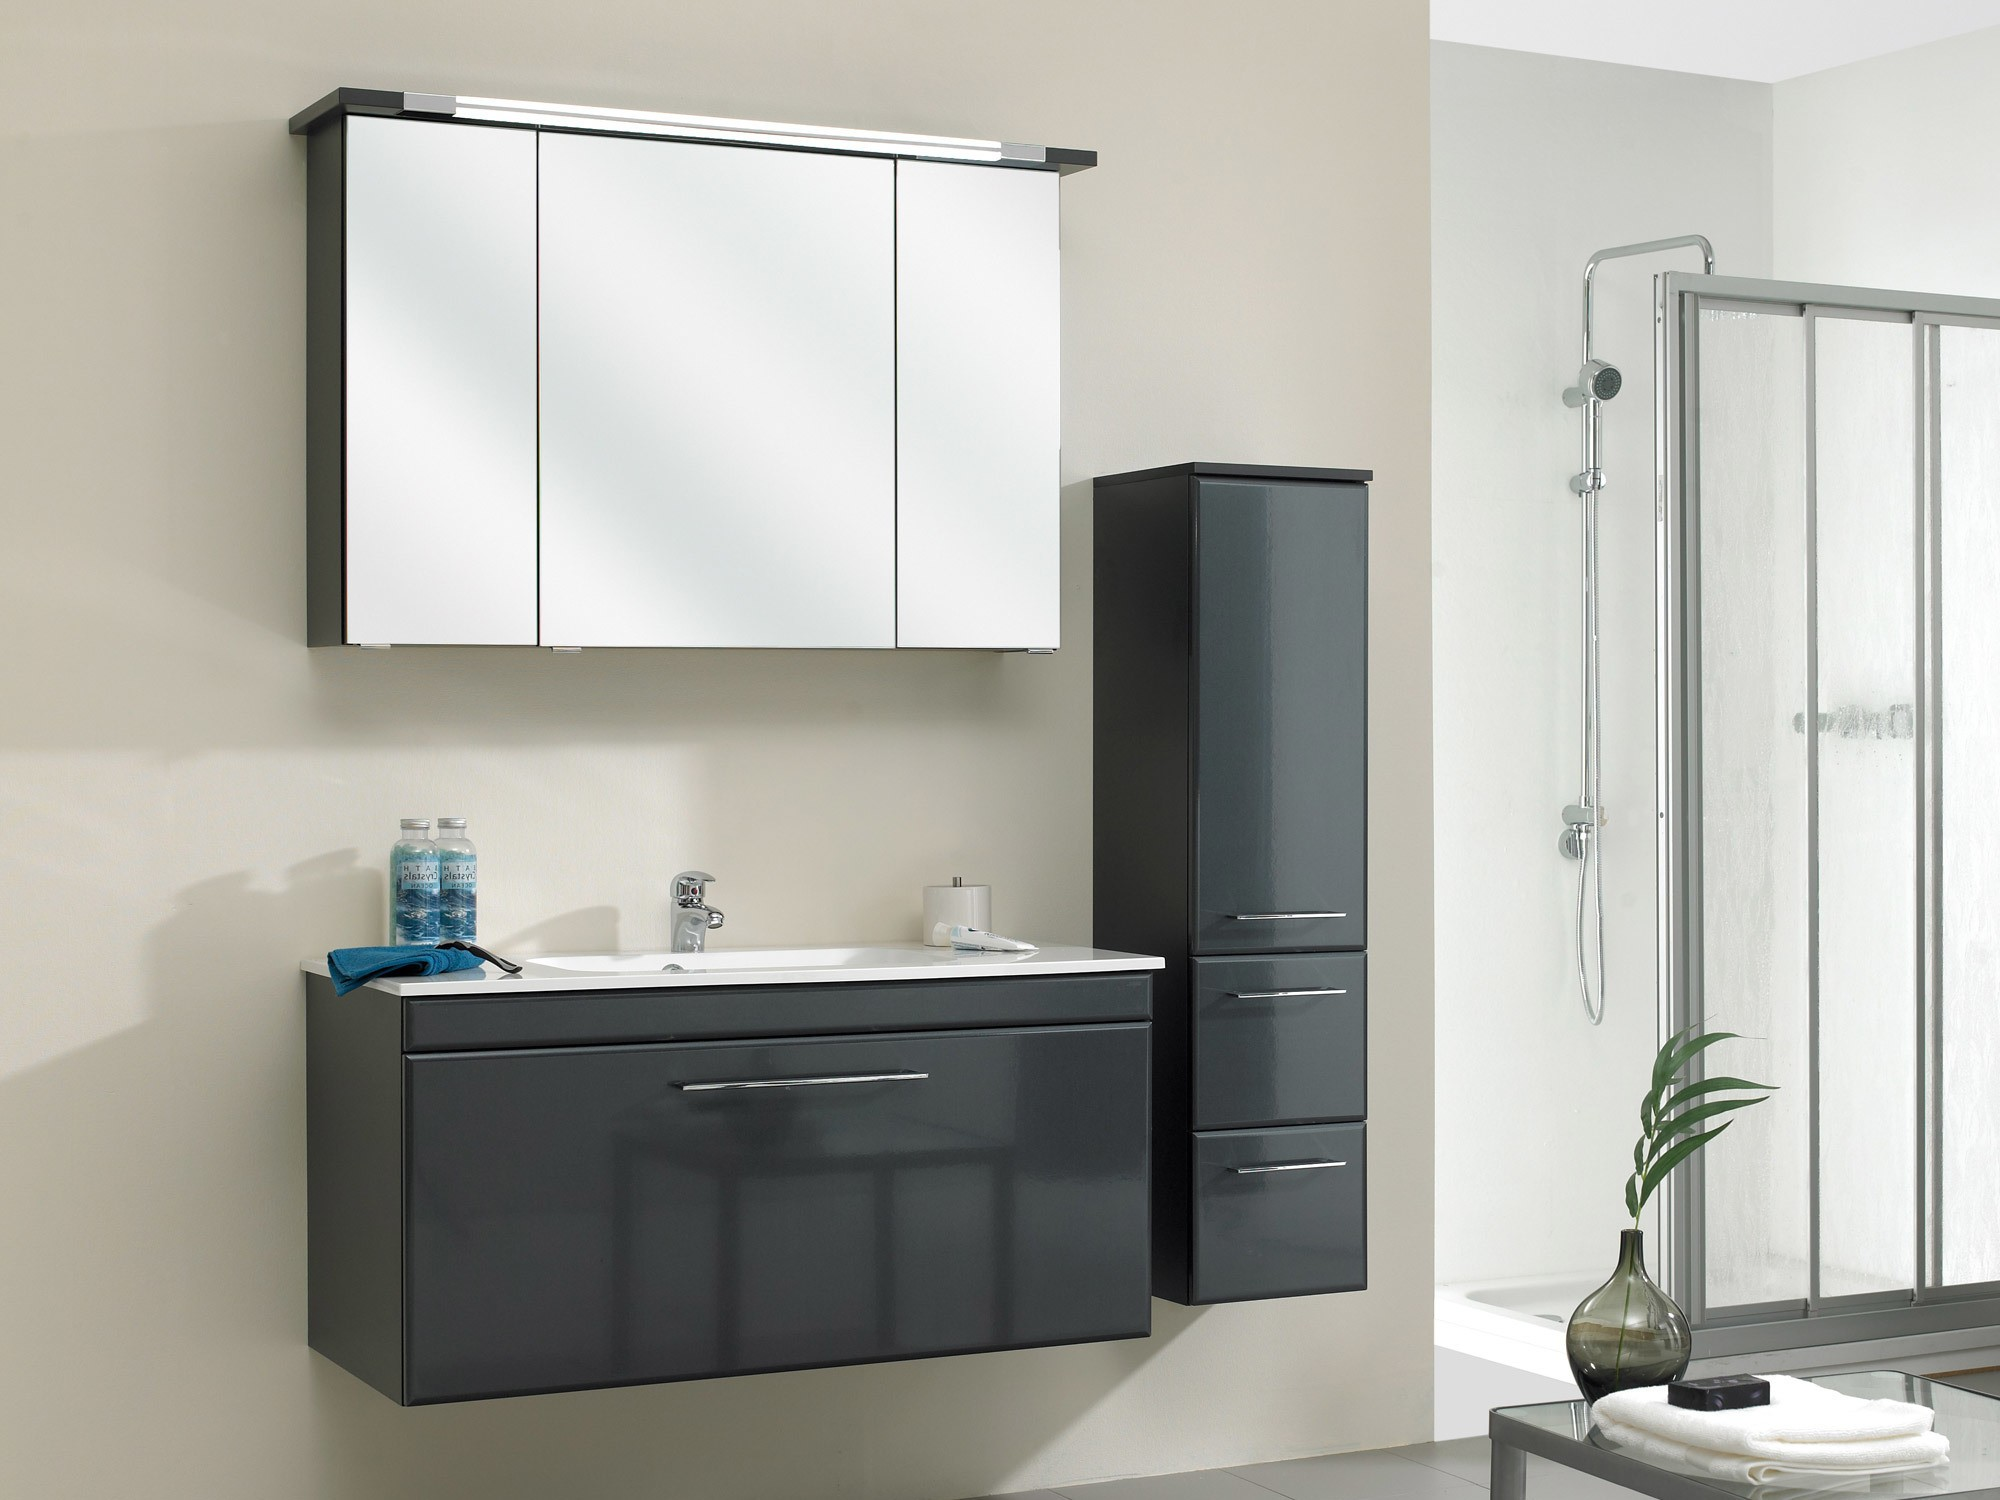 armoire de toilette conforama free armoire de toilette conforama u nanterre armoire de toilette. Black Bedroom Furniture Sets. Home Design Ideas